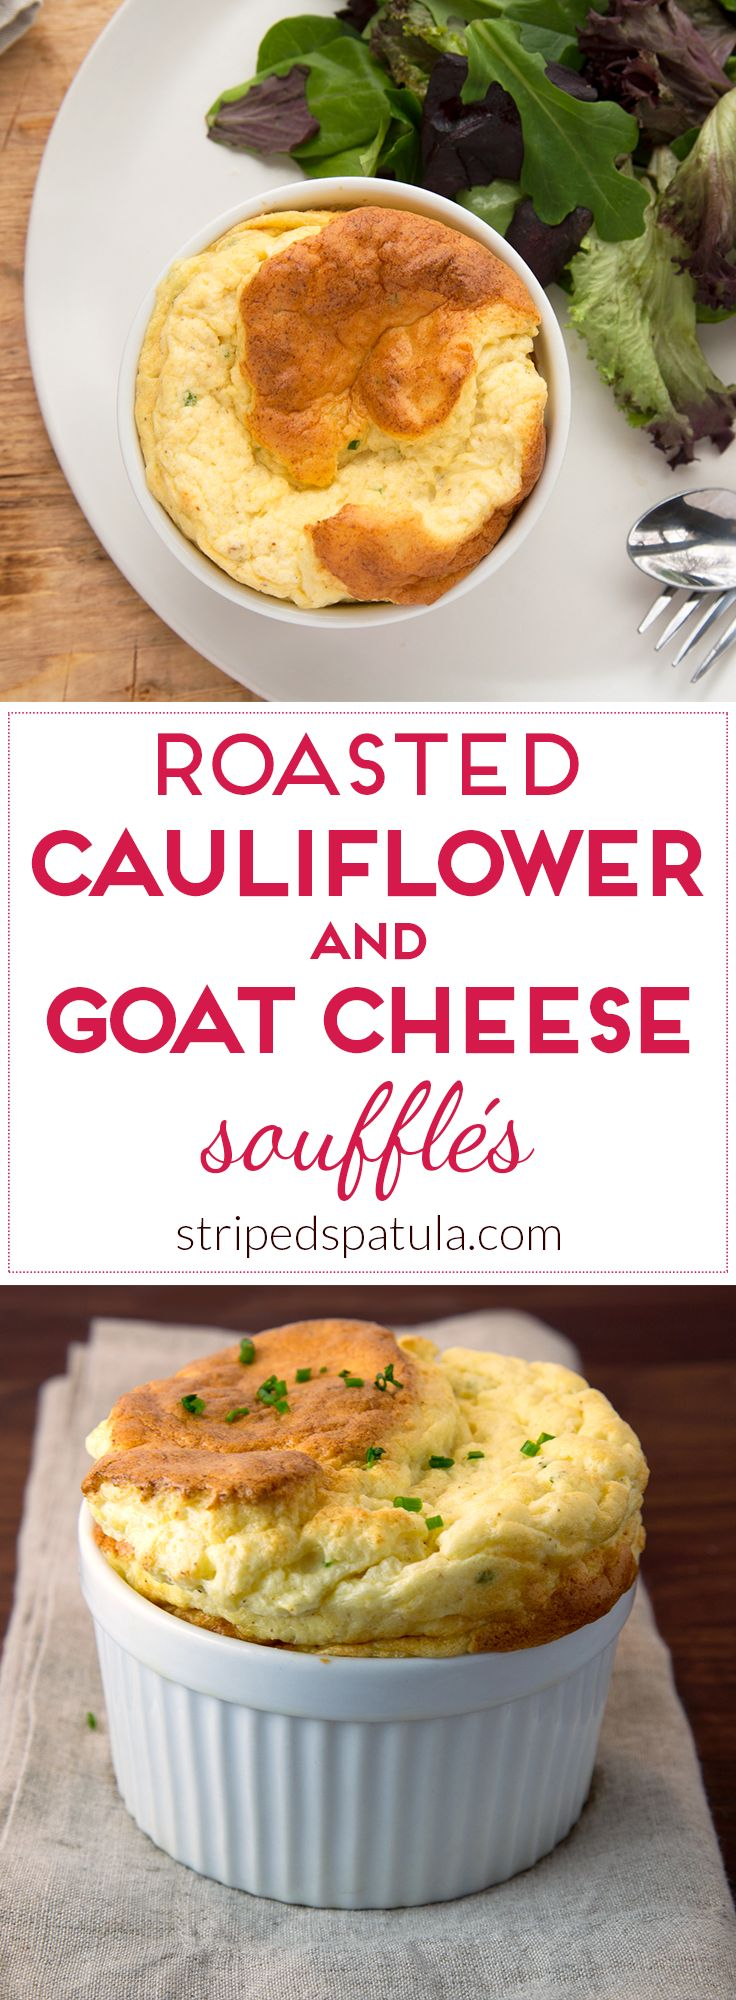 Roasted cauliflower puree and creamy goat cheese flavor a delicate soufflé batter. Great for a meat-free lunch or light dinner!